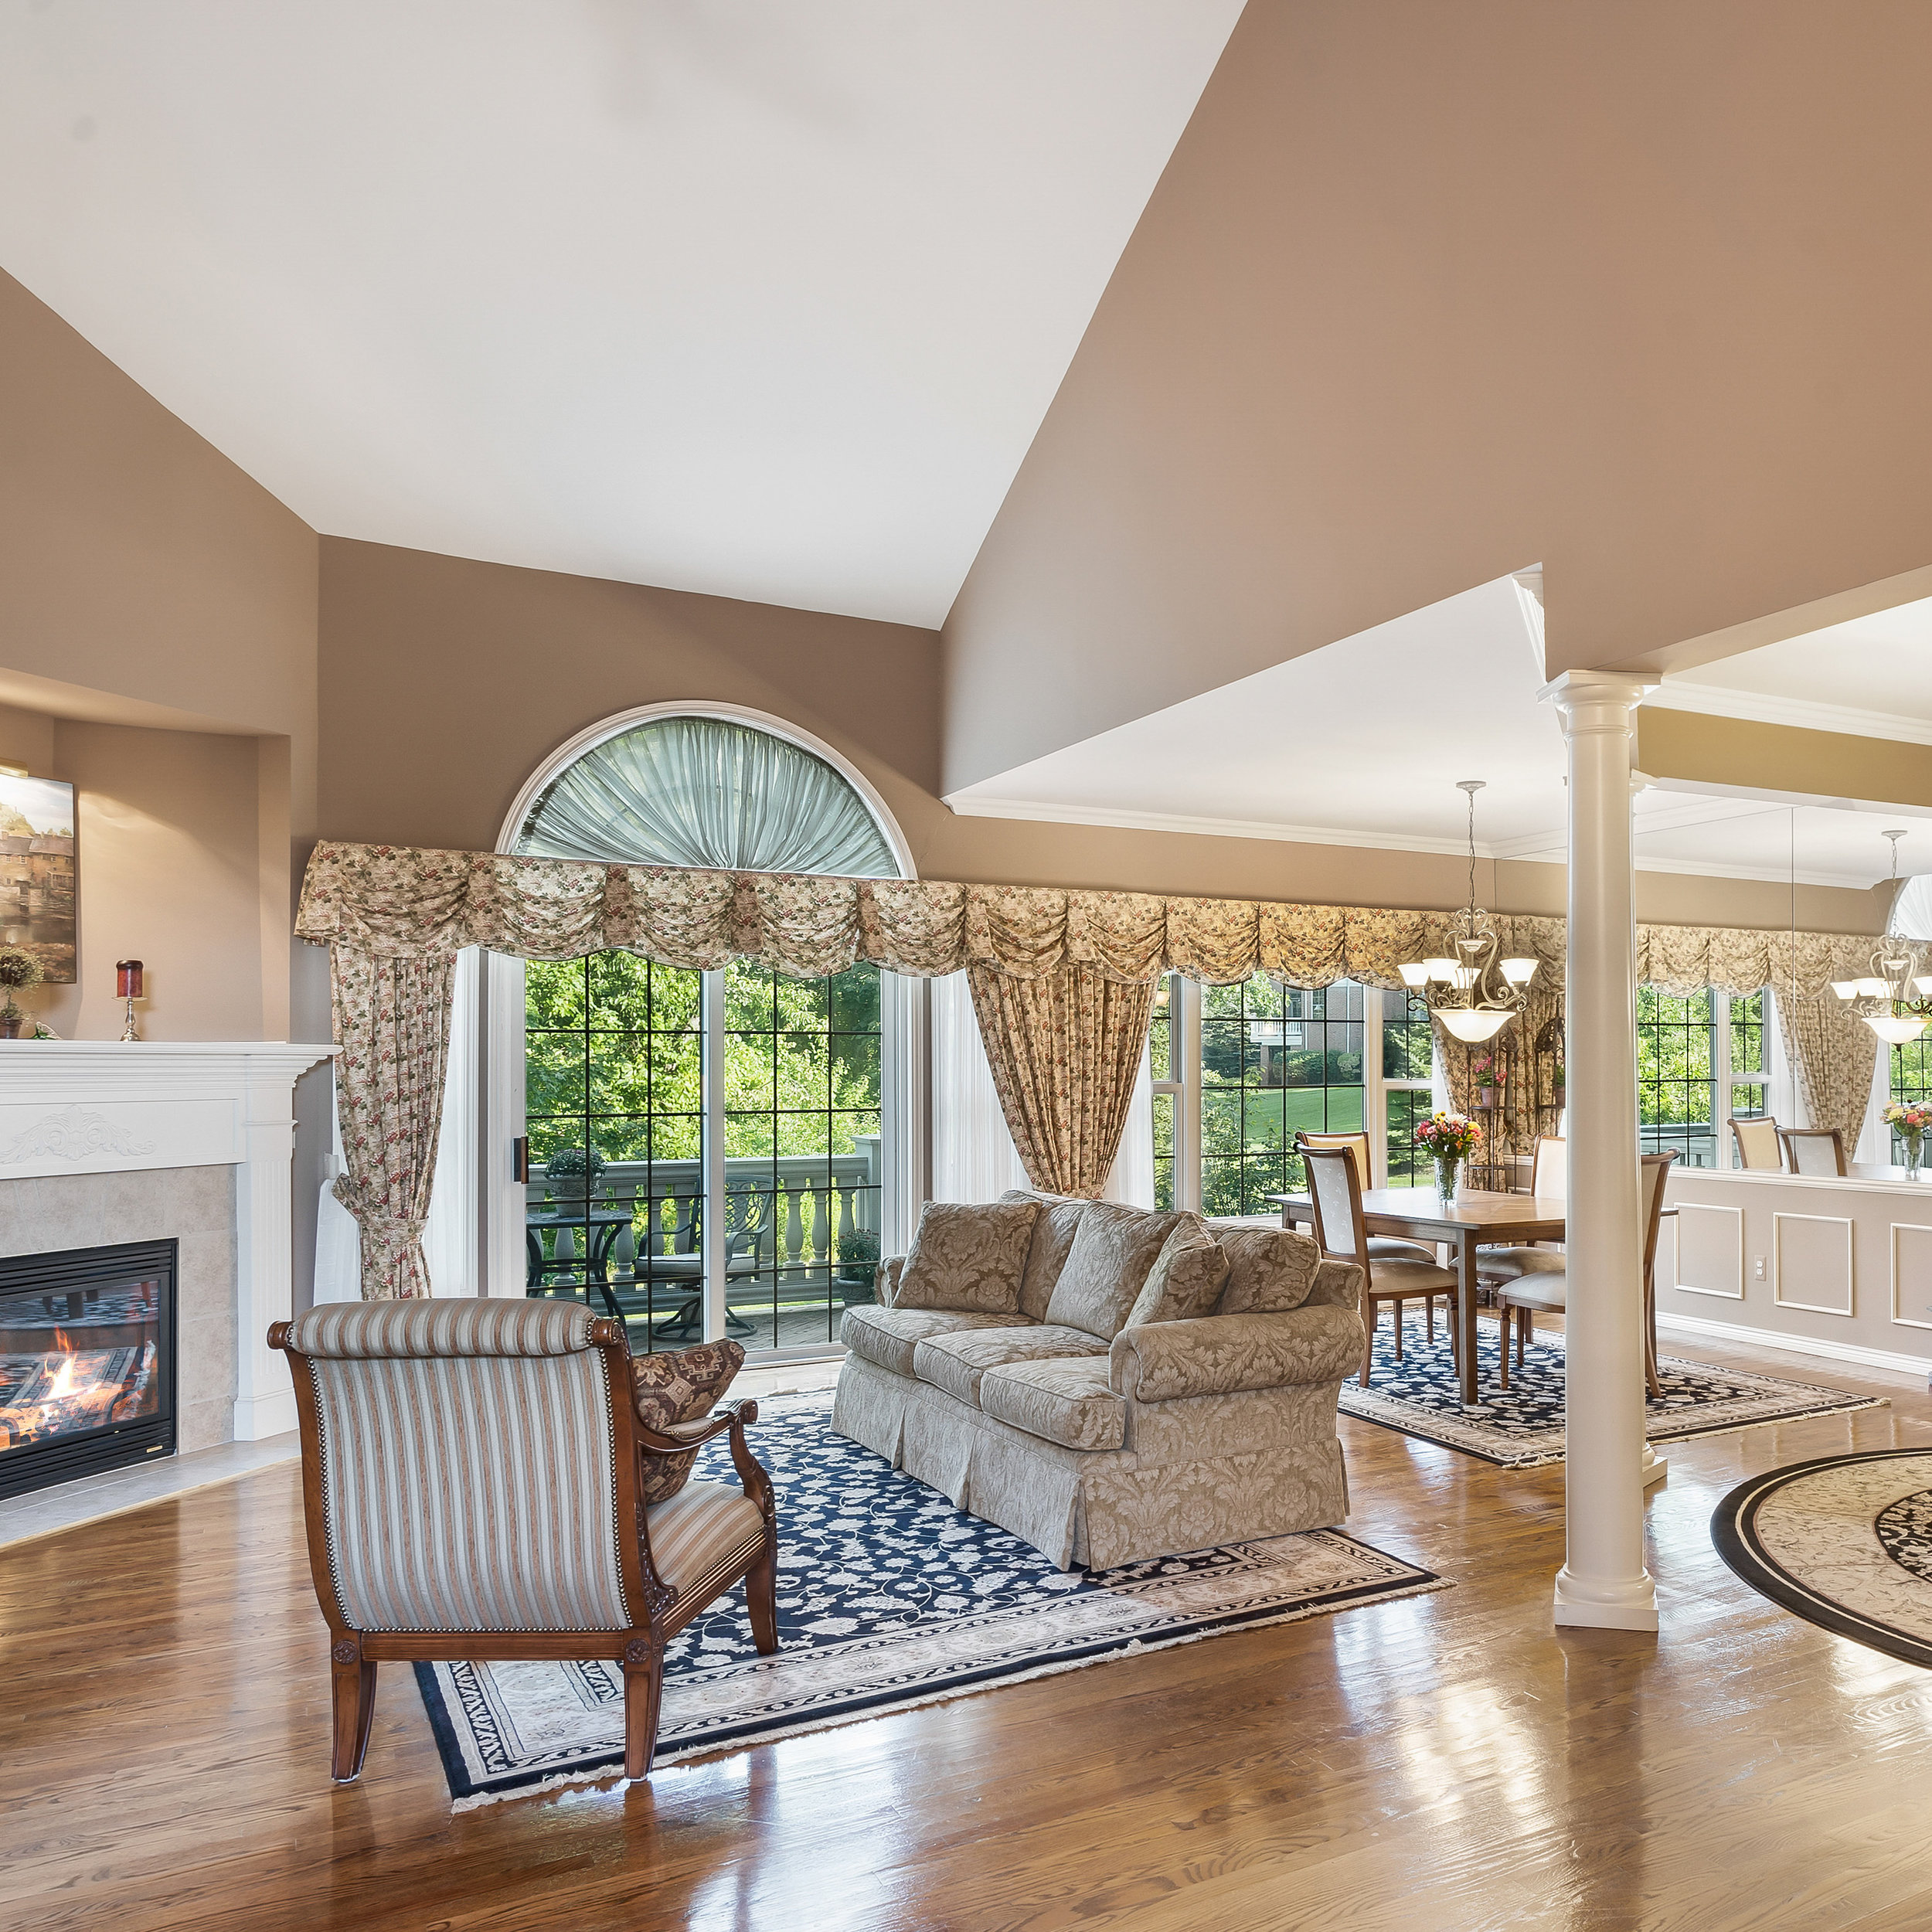 Search Featured Listings - Find your dream home!